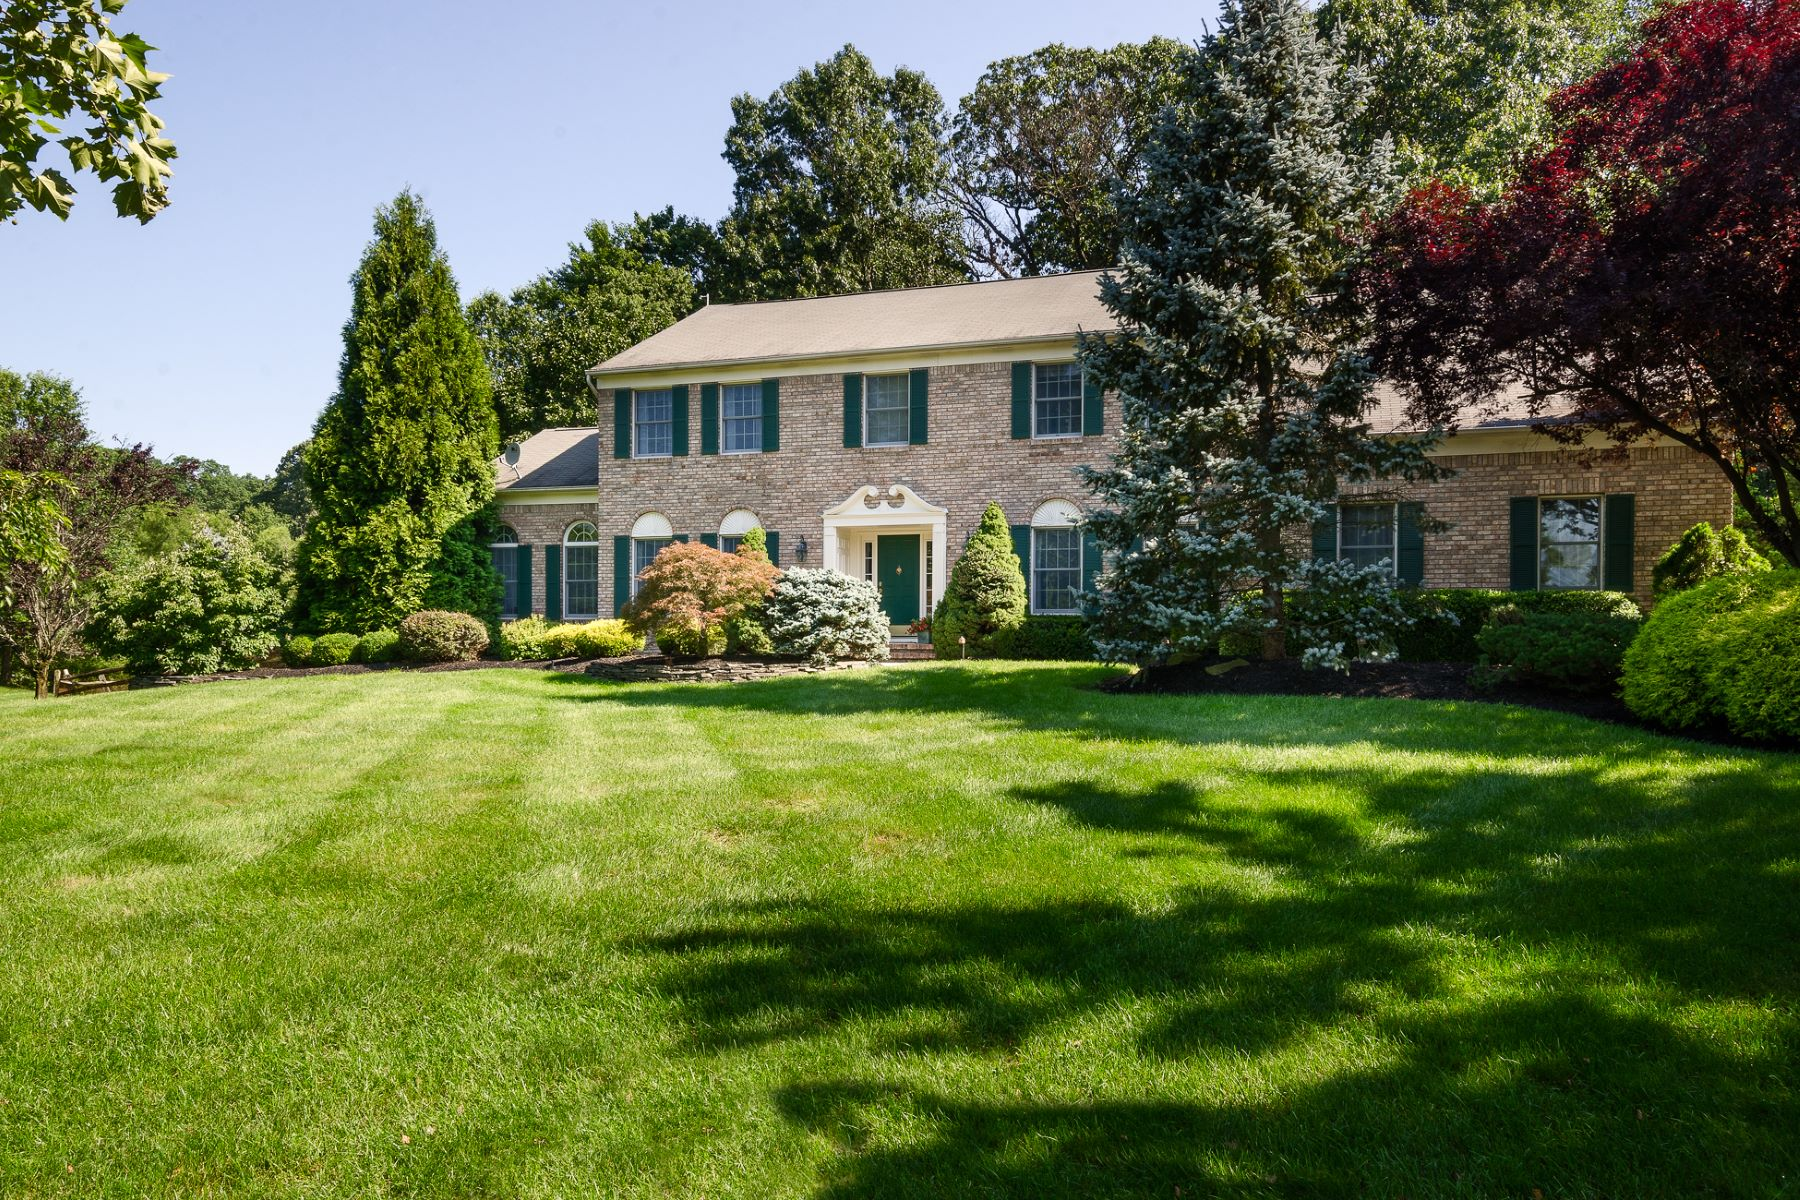 Single Family Home for Sale at Elegantly Updated on a Princeton Oaks Cul-De-Sac 5 Wynwood Court, West Windsor, New Jersey 08550 United StatesMunicipality: West Windsor Twp